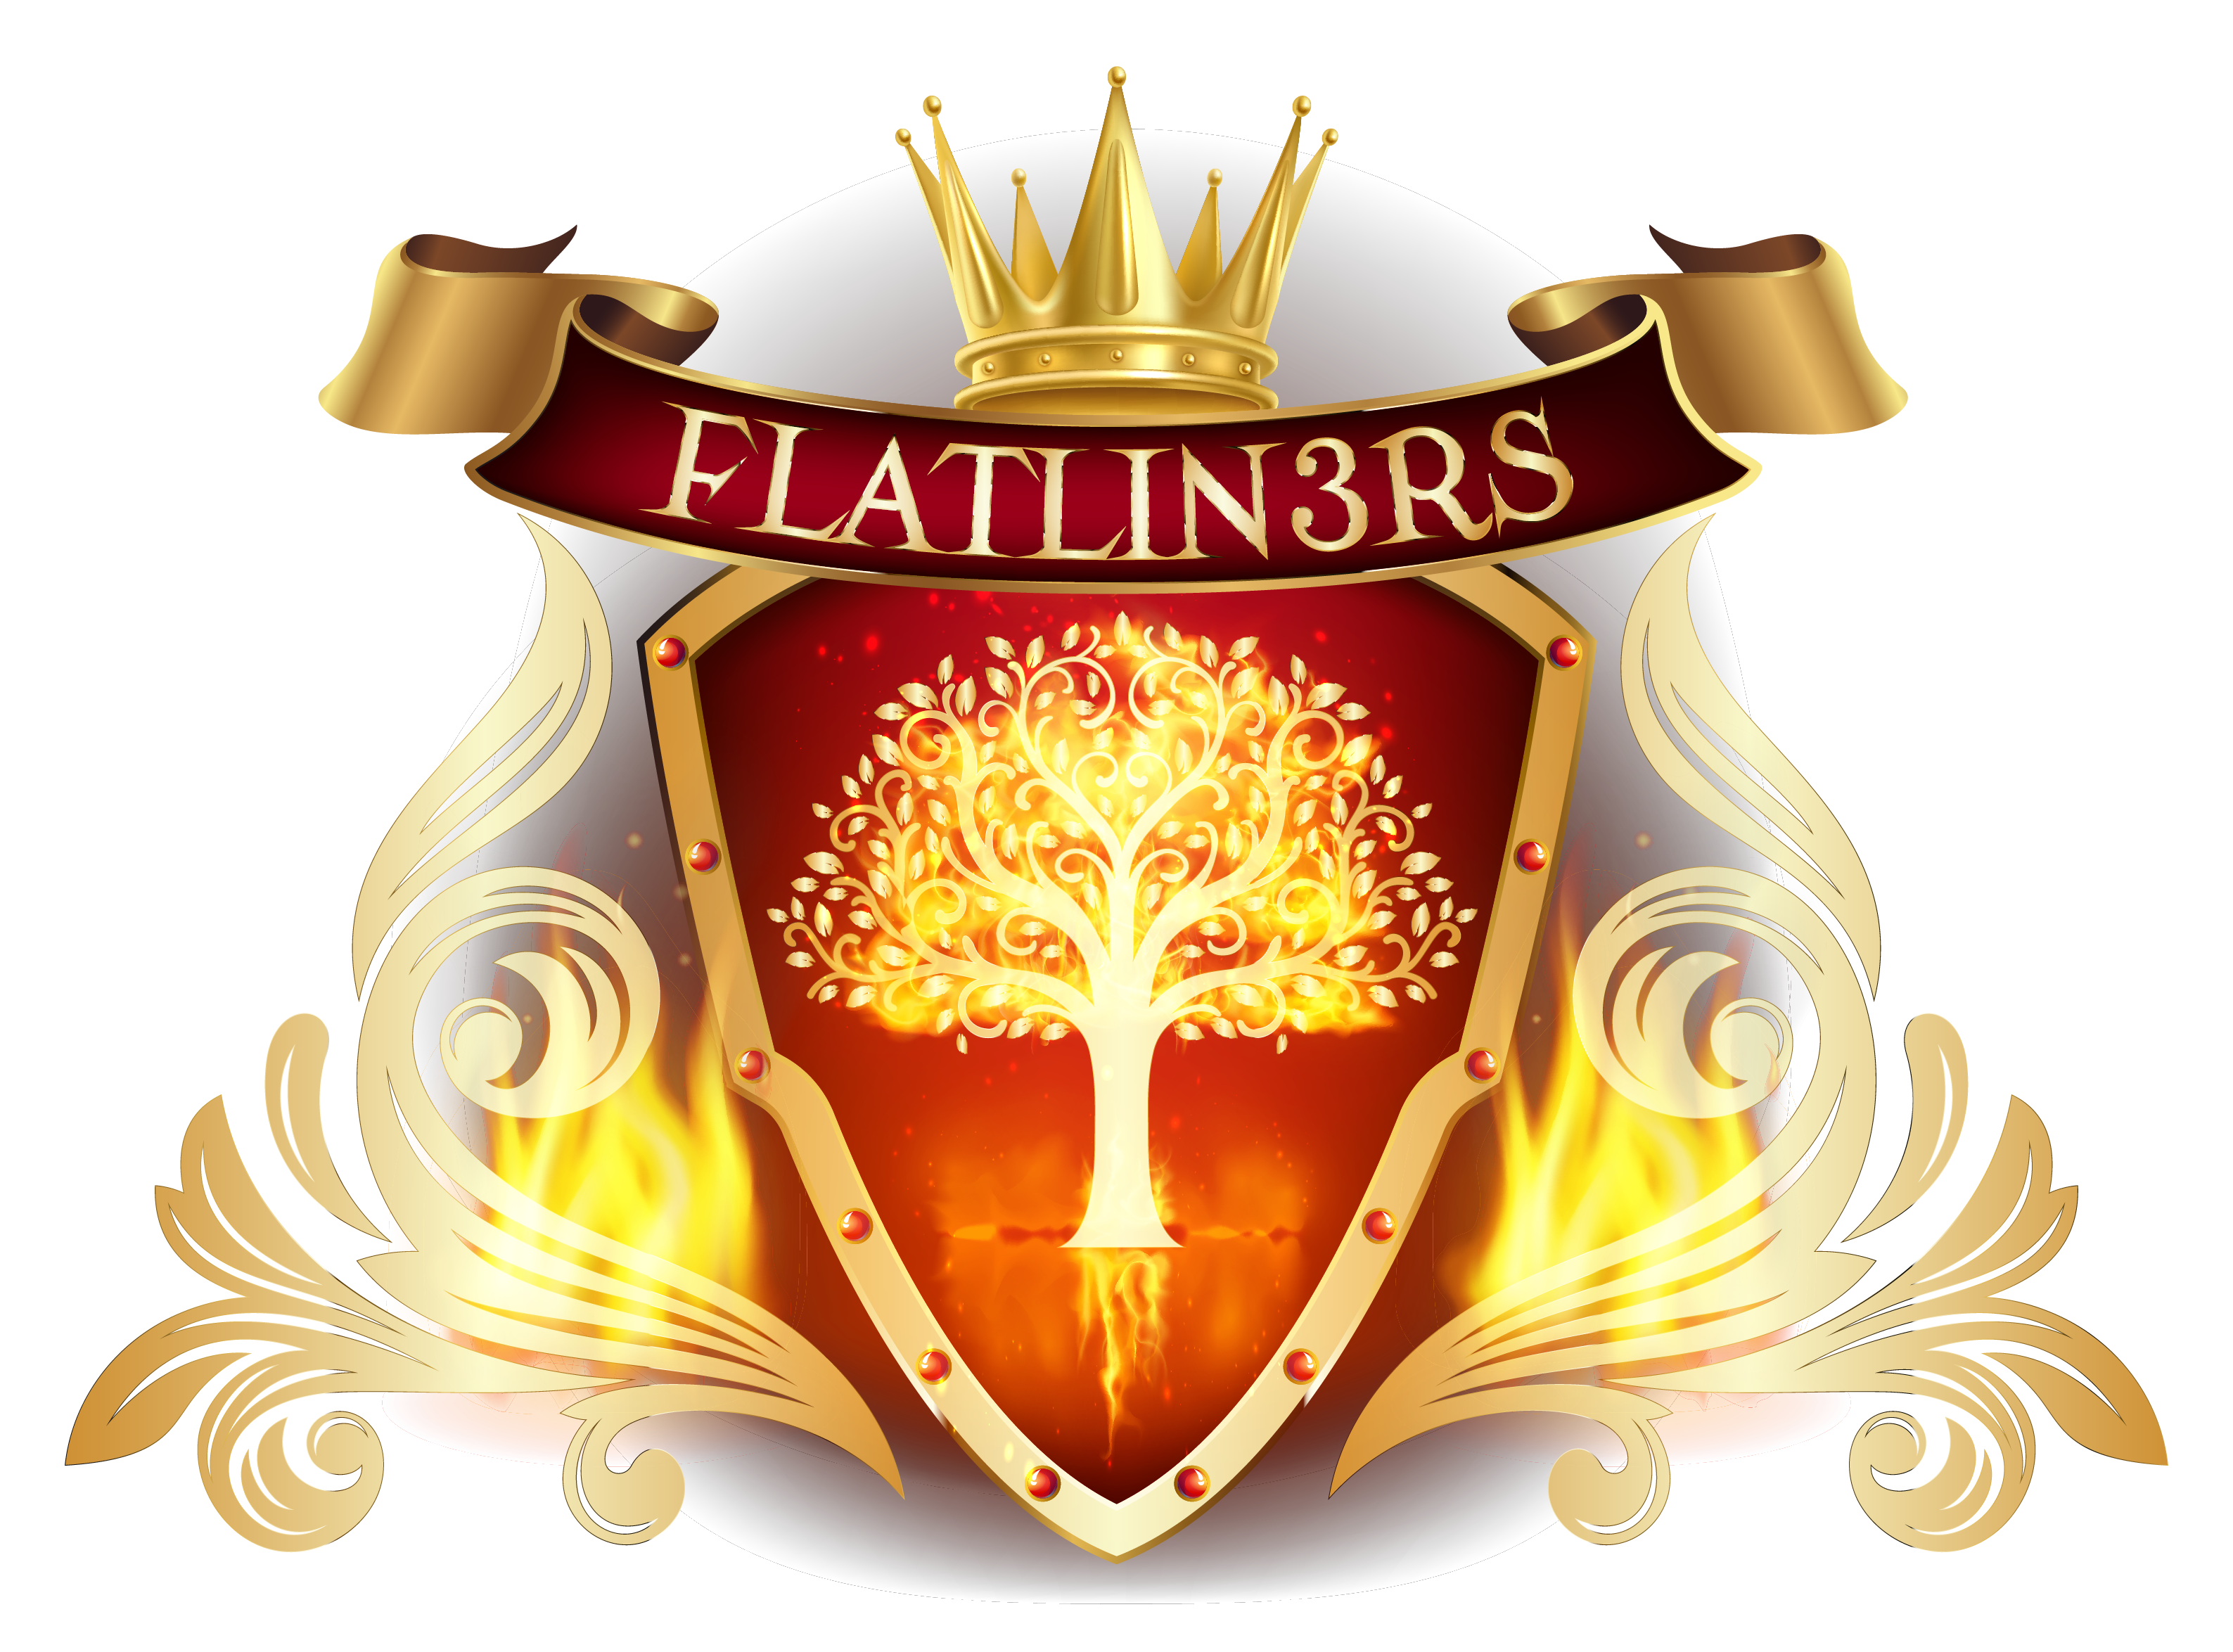 Ashes of Flatlin3rs